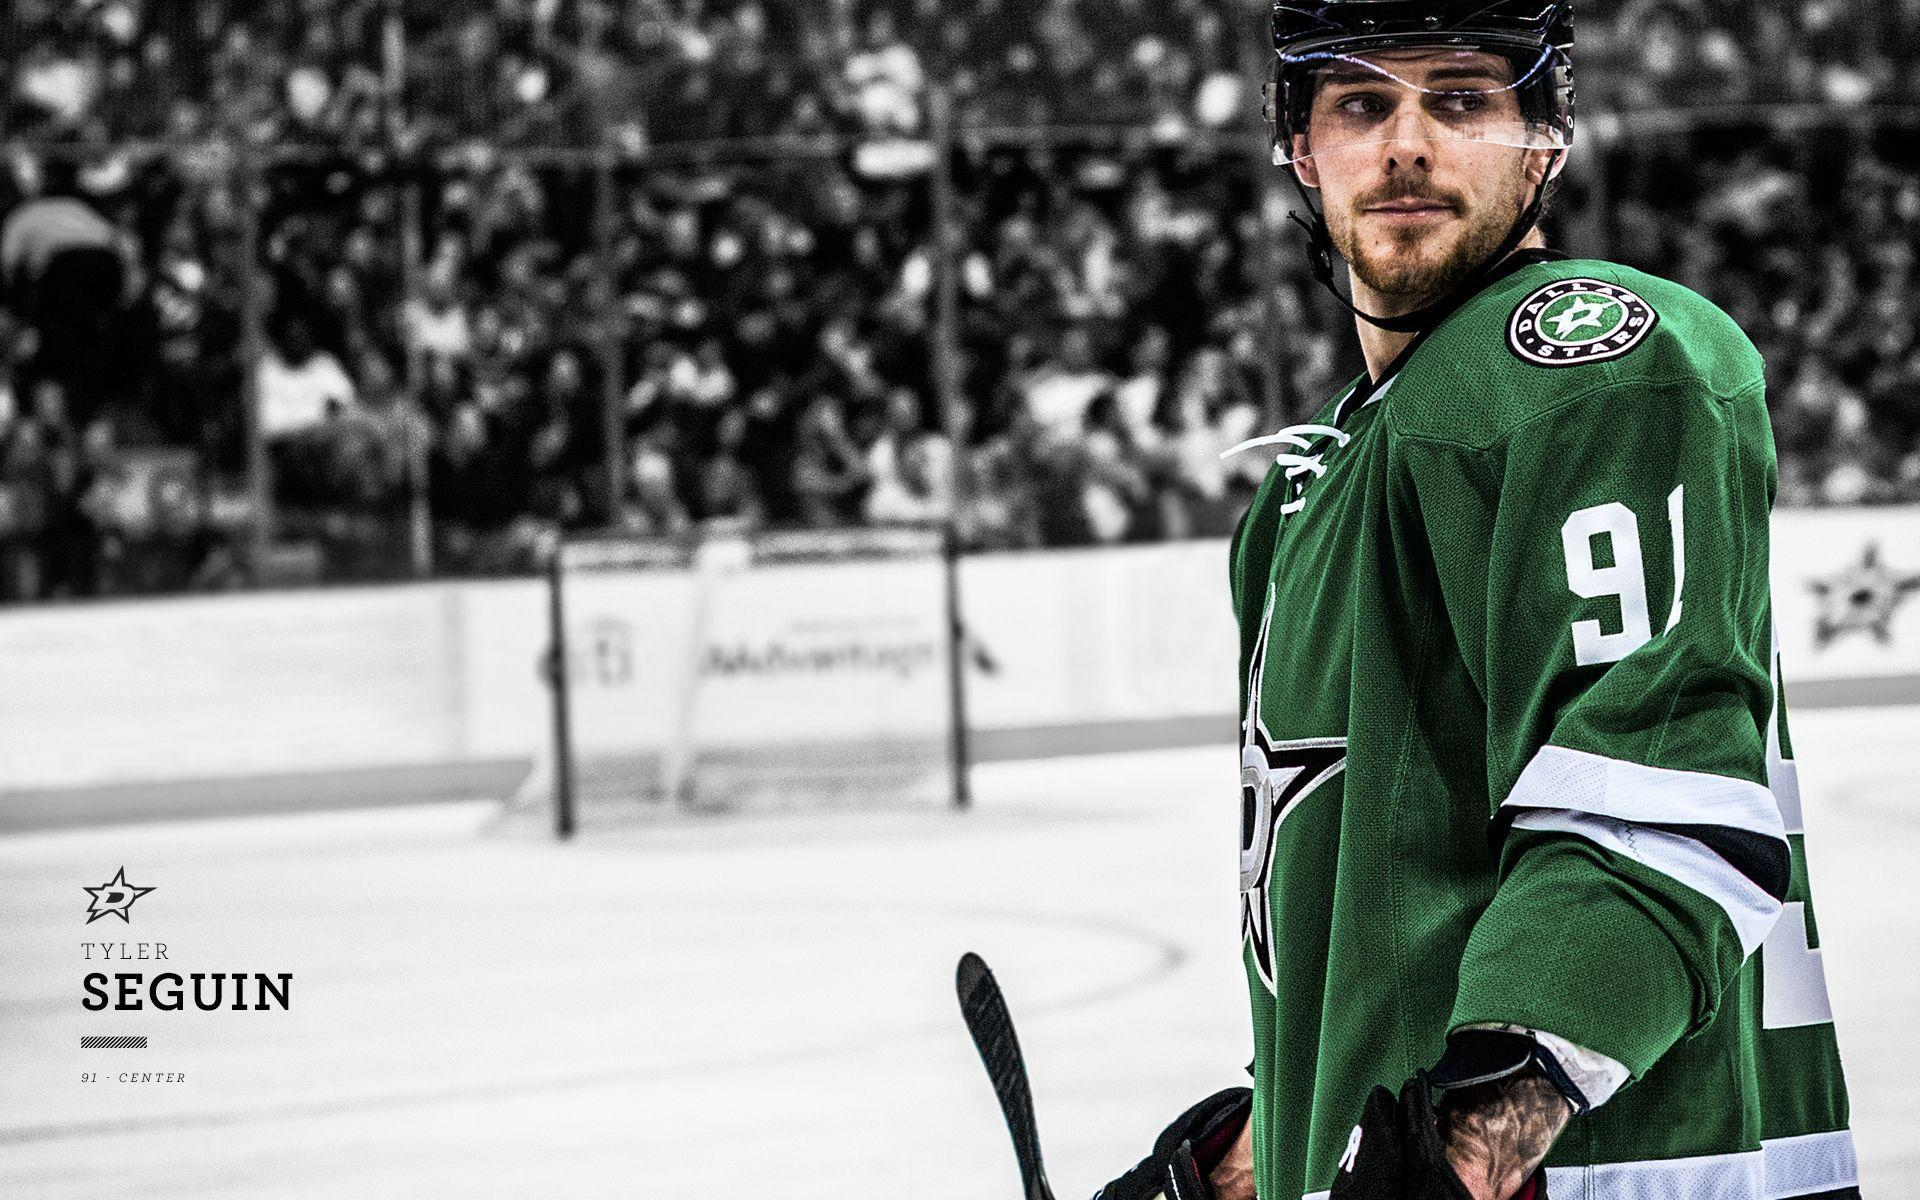 Dallas Stars Background Wallpaper - WallpaperSafari